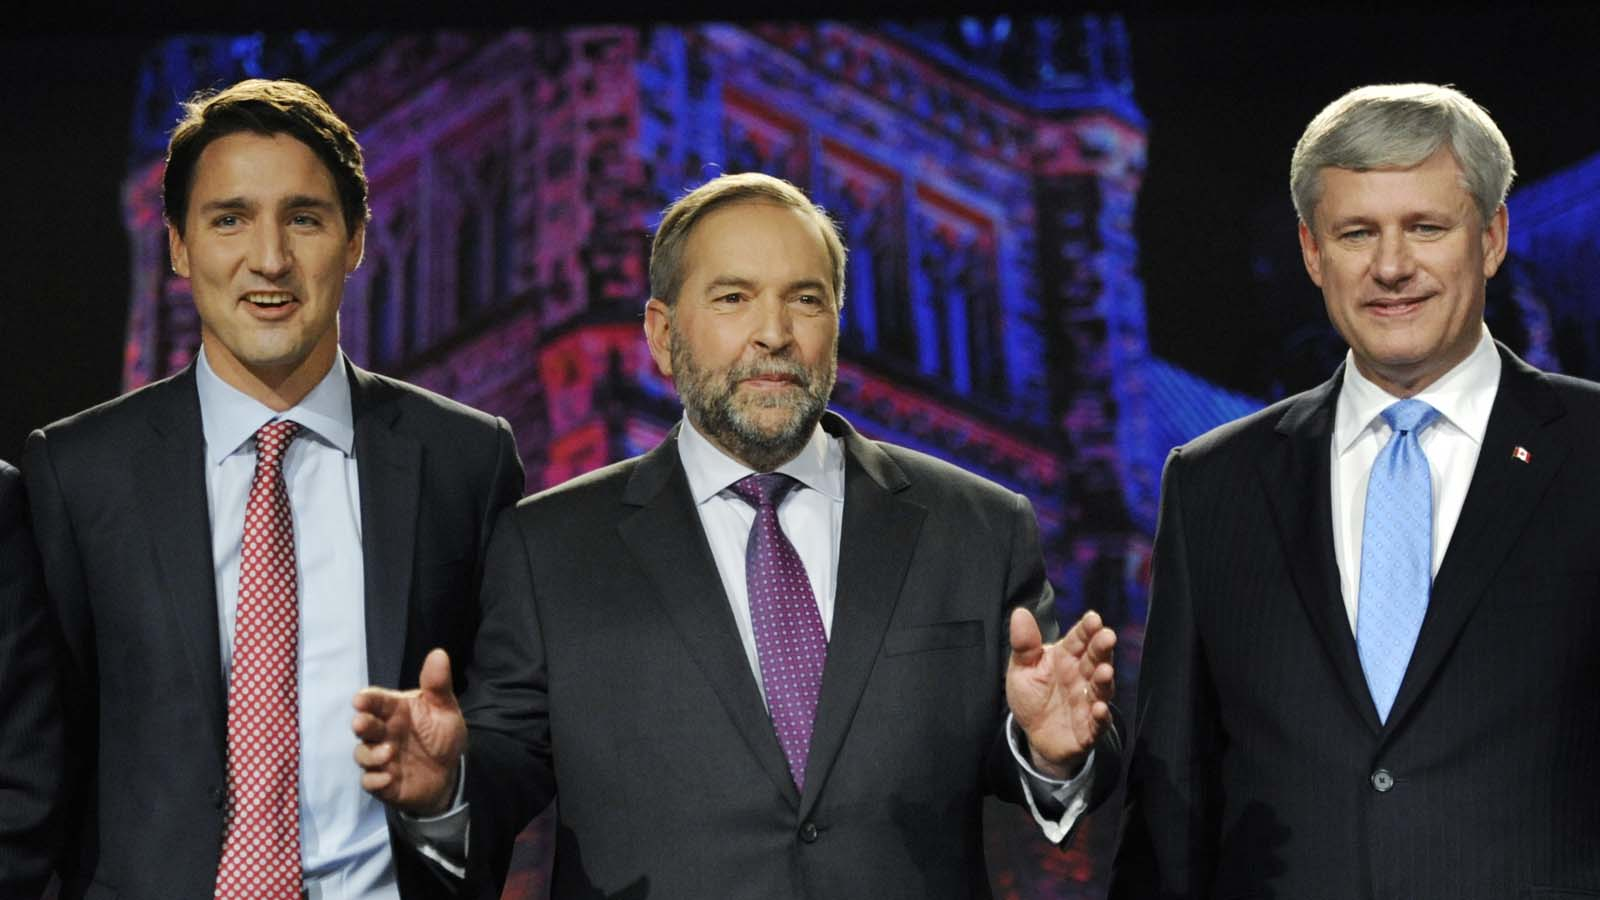 Liberal leader Justin Trudeau (L), NDP leader Thomas Mulcair (C) and Progressive Conservative leader Stephen Harper pose for a photo opportunity prior to the beginning of the Globe and Mail Leaders Debate in Calgary, Alberta September 17, 2015. REUTERS/Mike Sturk - RTS1NBL